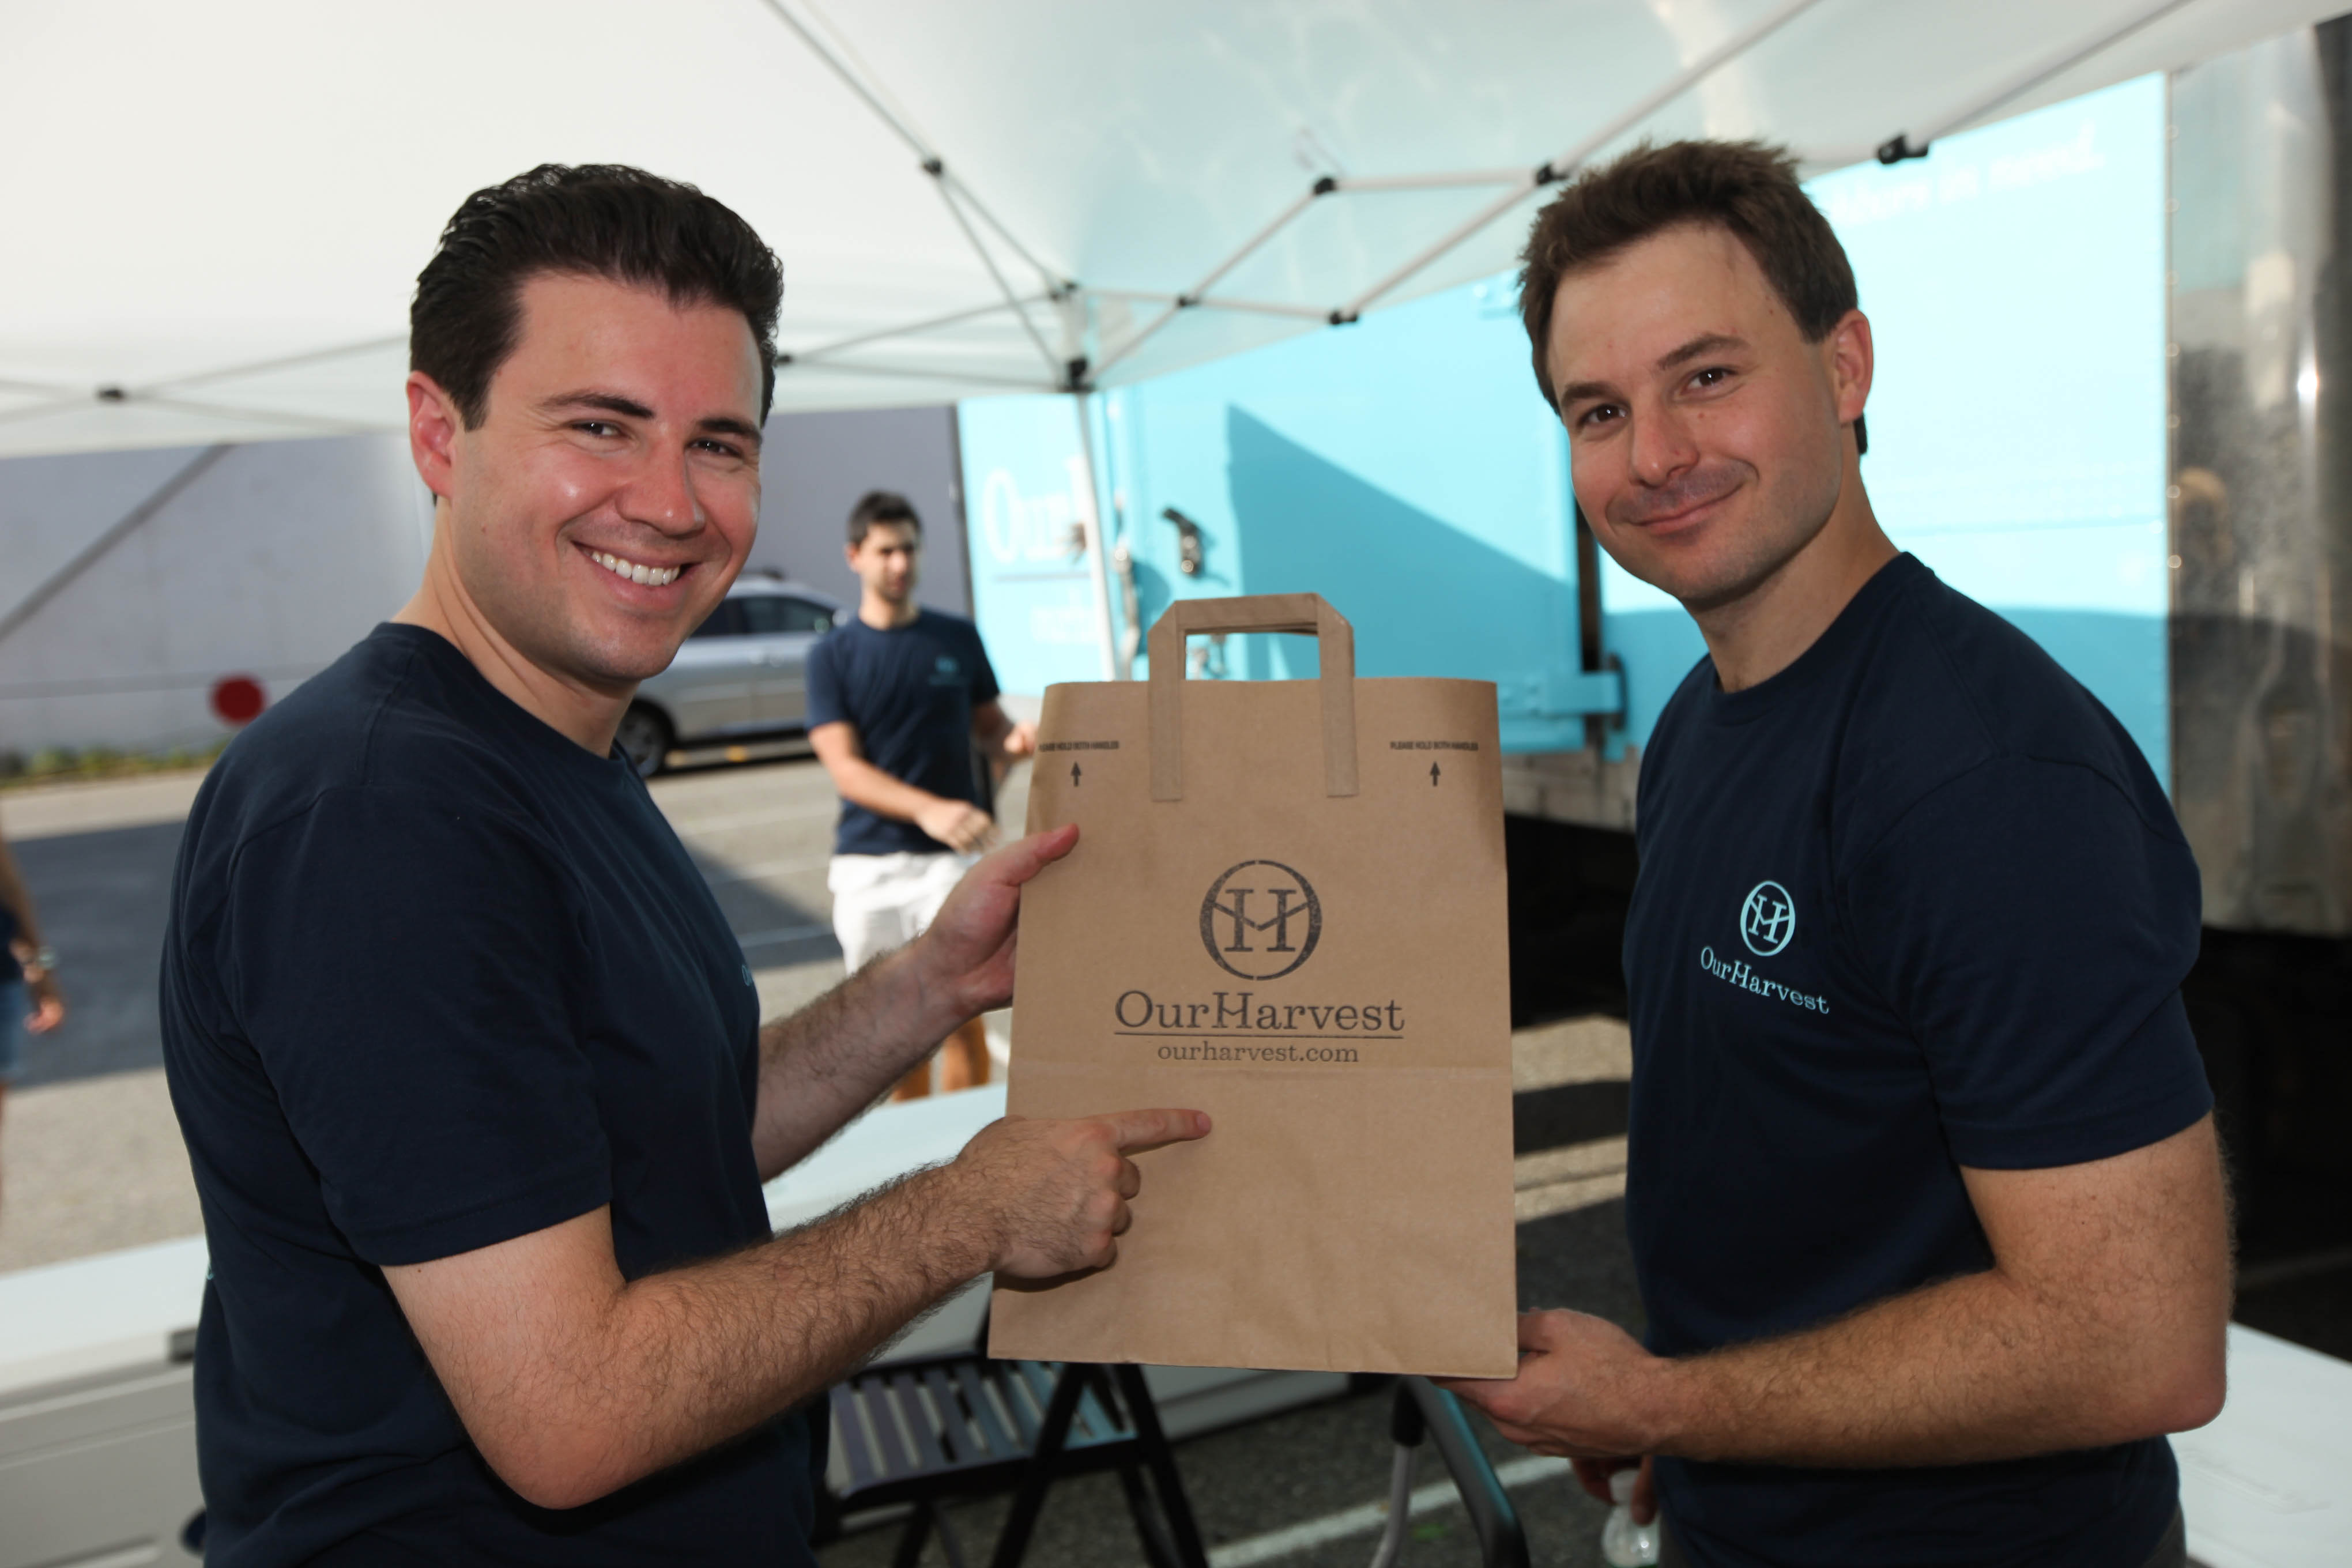 OurHarvest cofounders Scott Reich and Mike Lynch. image: ourharvest